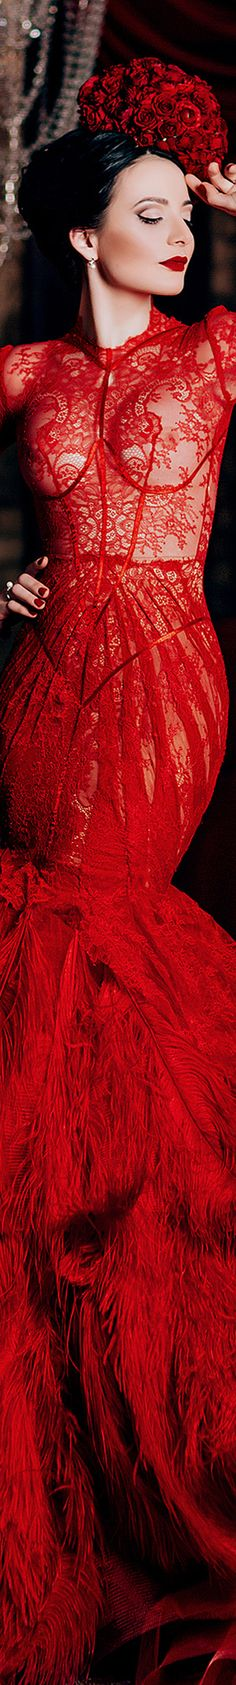 I love Anna Kiseliova's photography so much! This red feather dress is absolutely spectacular.